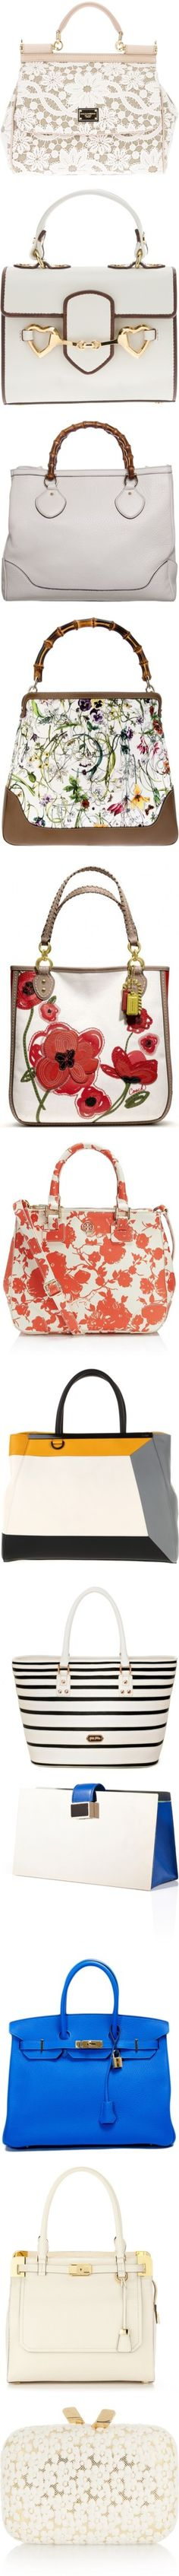 """Bag Inn #1"" by reenz ❤ liked on Polyvore"